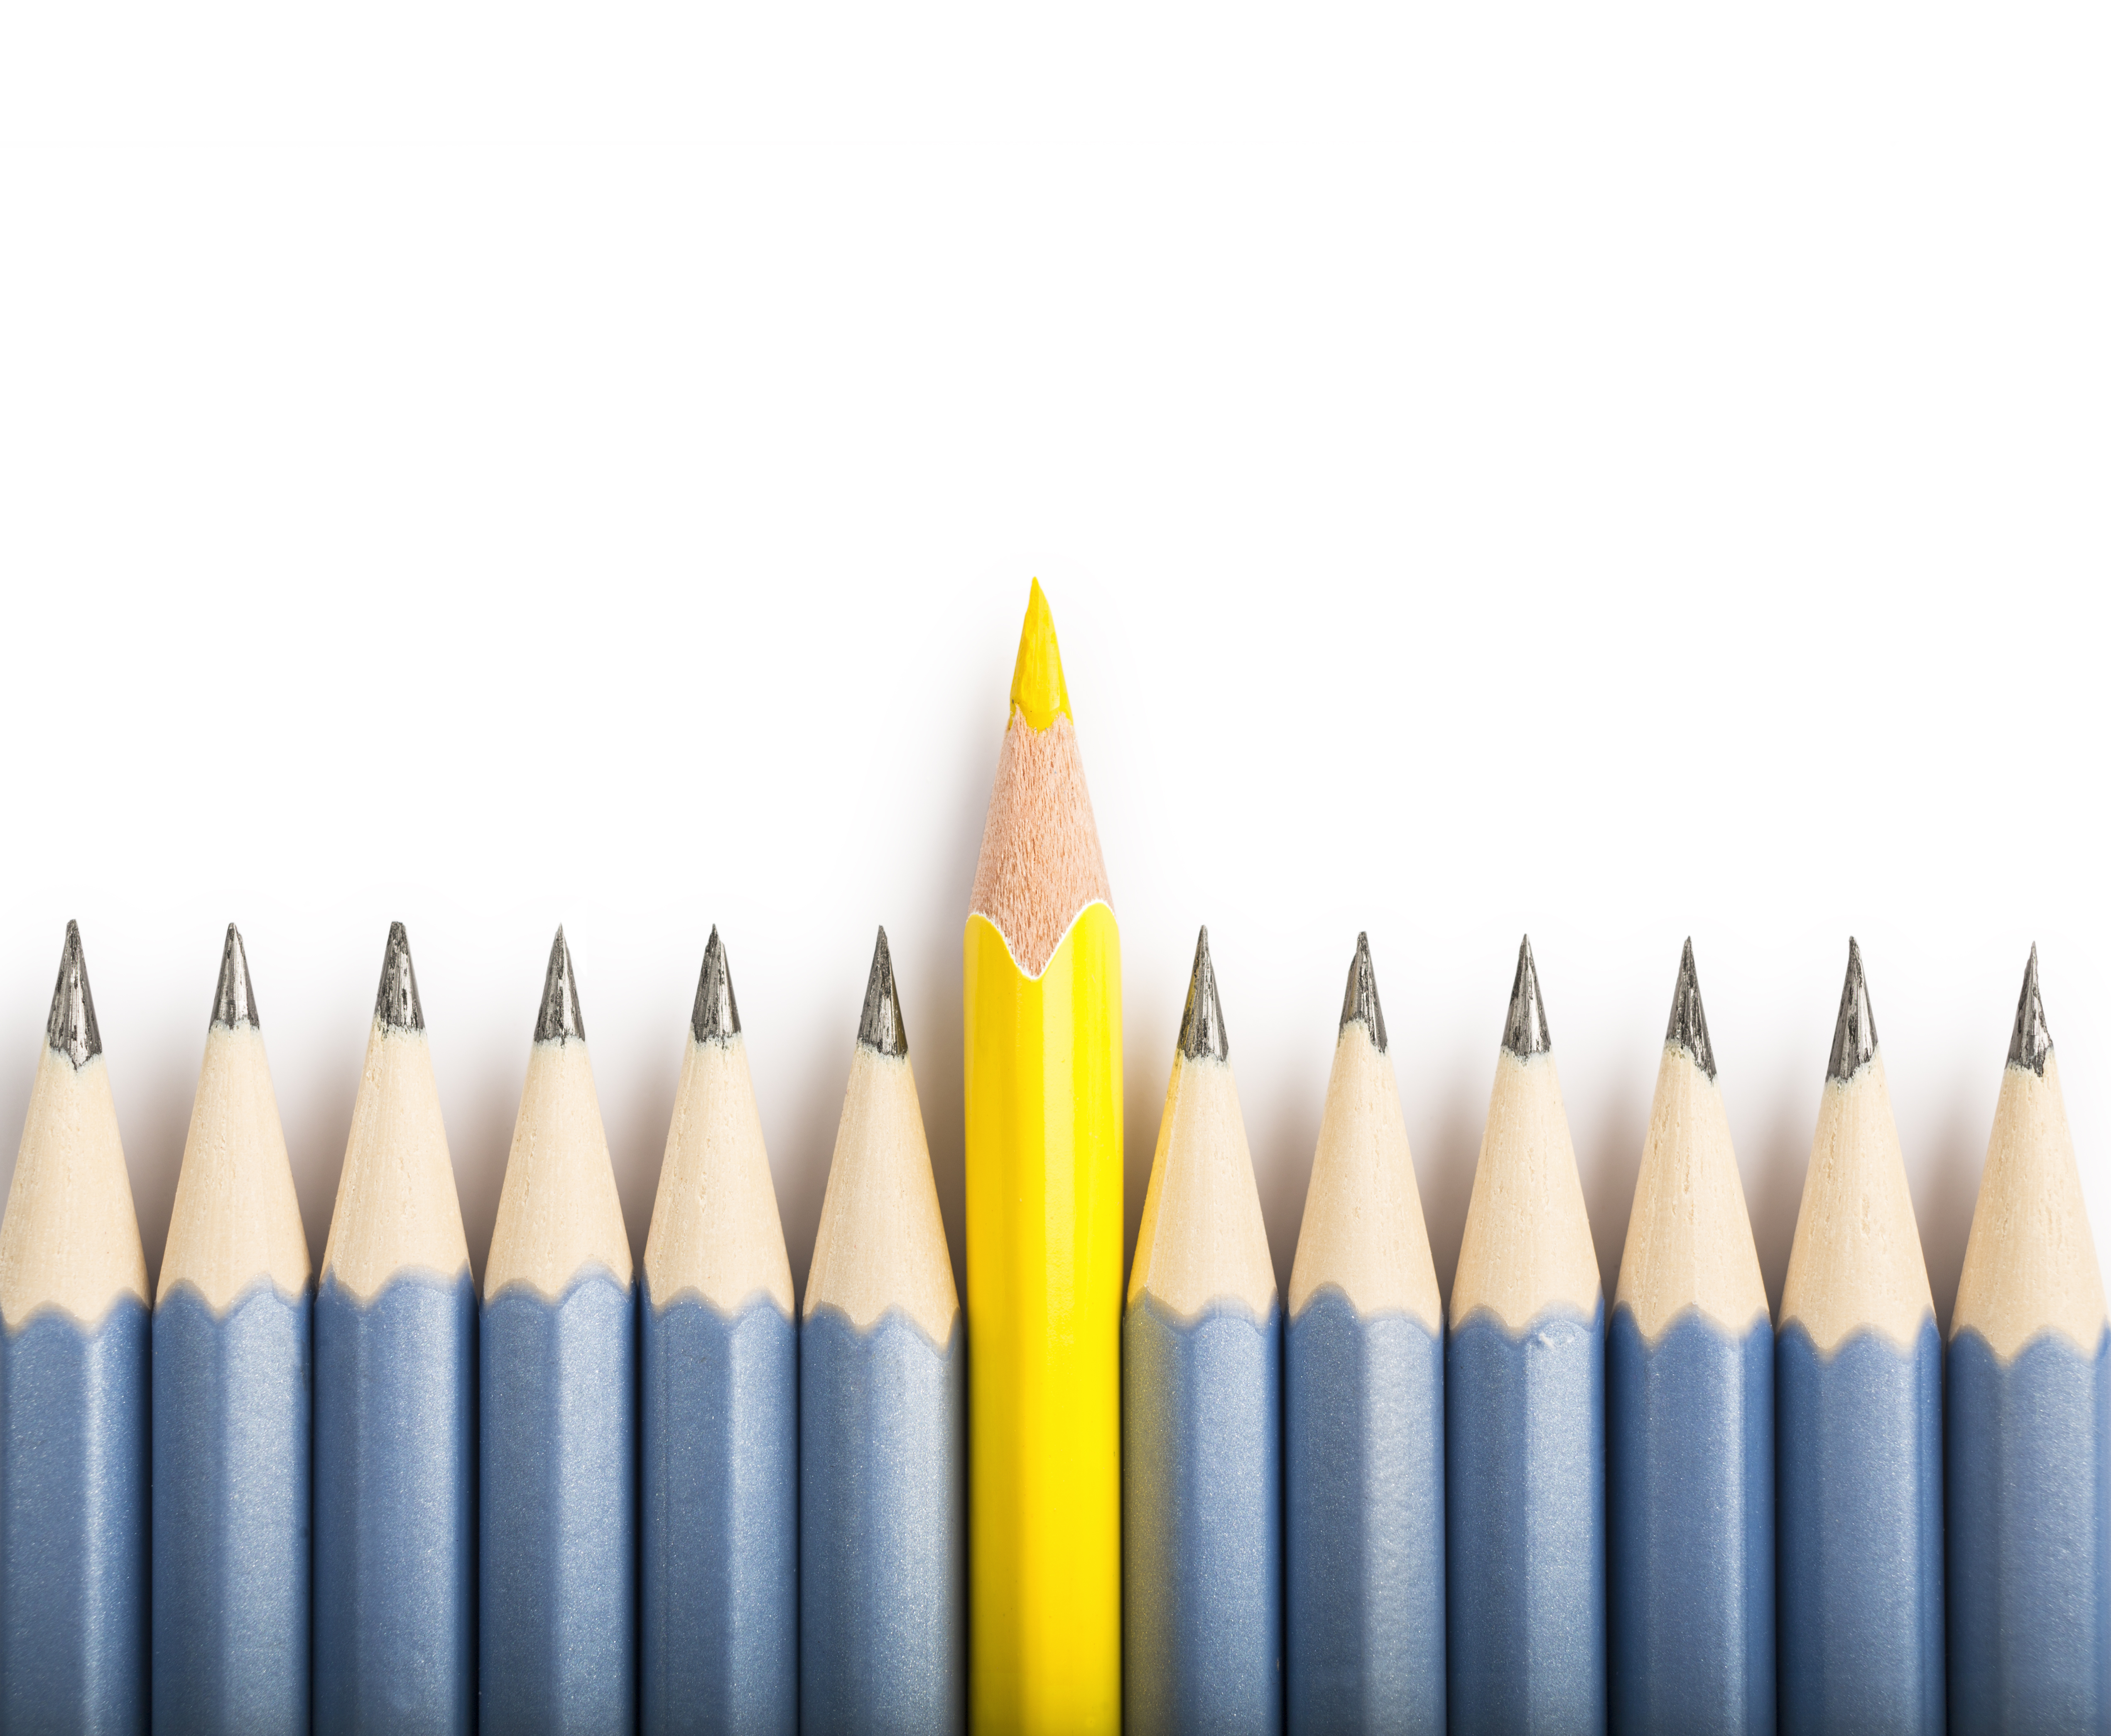 View directly from above of a group of pencils in which a yellow pencil differs from the others and stands out from the crowd. Concept of individual, standing out from the crowd and business purposes. The crayons are nicely isolated on a white background, with a natural shadow (studio shot in macro mode).